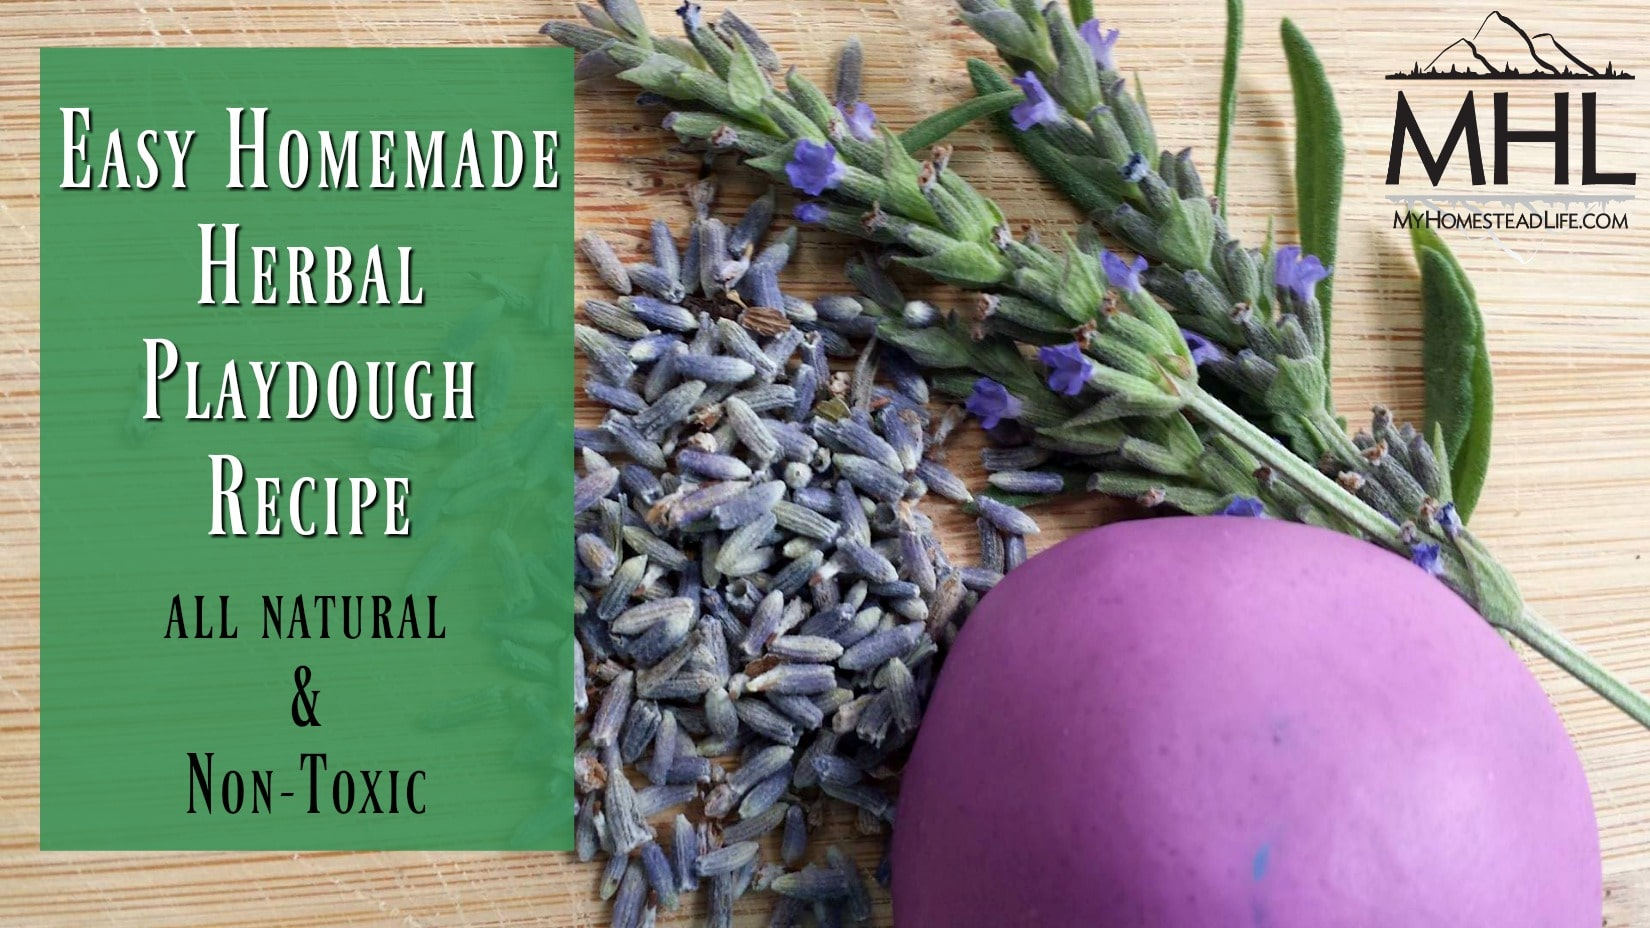 Easy Homemade Herbal Playdough Recipe. All natural and non-toxic.